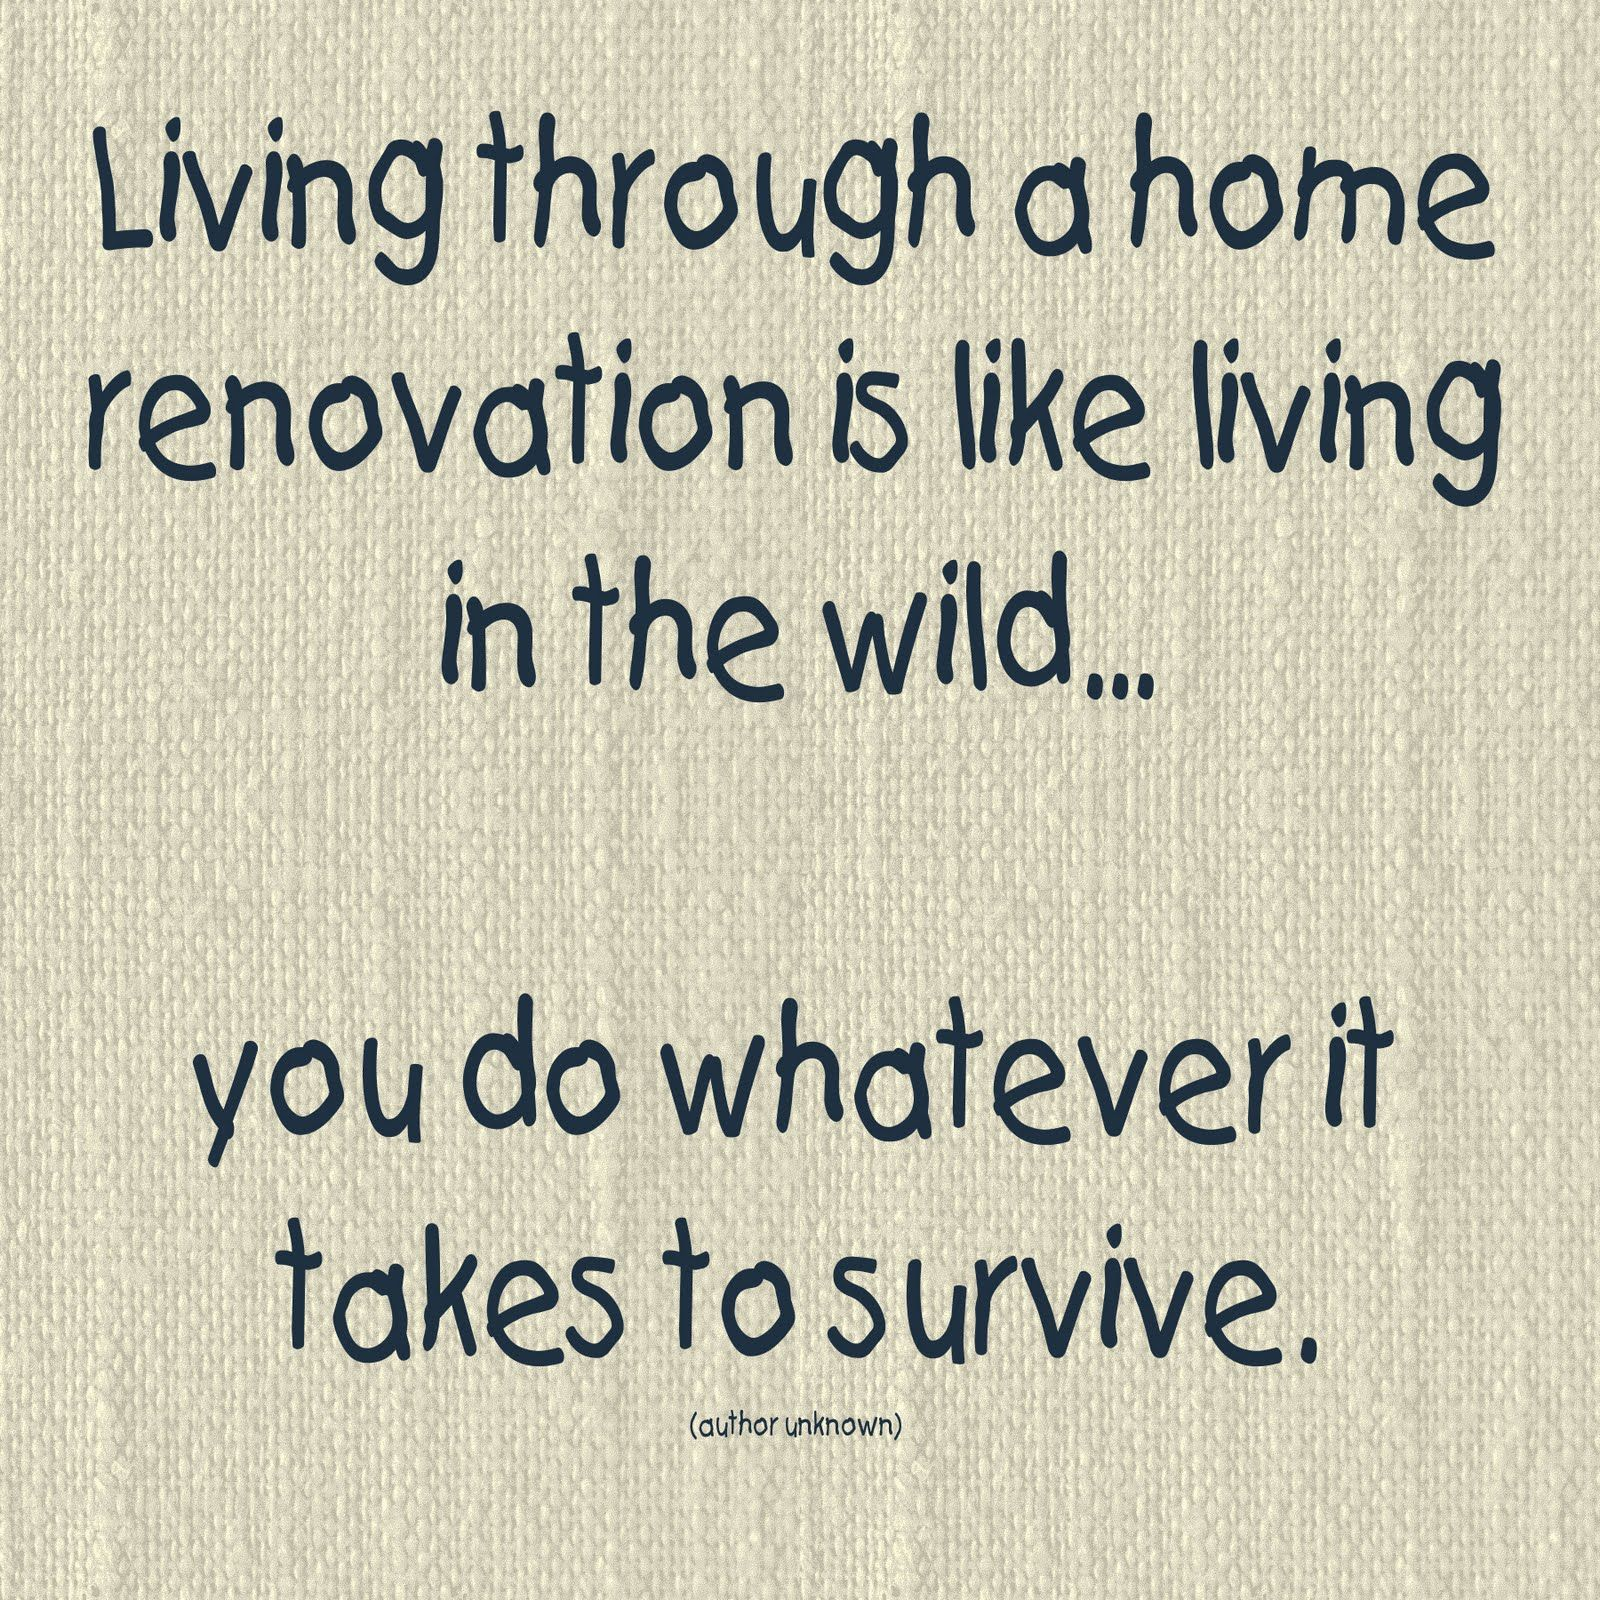 Funny Quotes Home Renovation. QuotesGram | T Shirt design ideas in on handyman cartoon, improvement cartoon, vegetable eating cartoon, framing cartoon, construction cartoon, veterinarians cartoon, gutters cartoon, no plan cartoon, general contractor cartoon, people dining cartoon, moving cartoon, renovation cartoon, roofing cartoon, bathroom cartoon, architecture cartoon, home cartoon, photography cartoon, maintenance cartoon, carpentry cartoon, drywall cartoon,